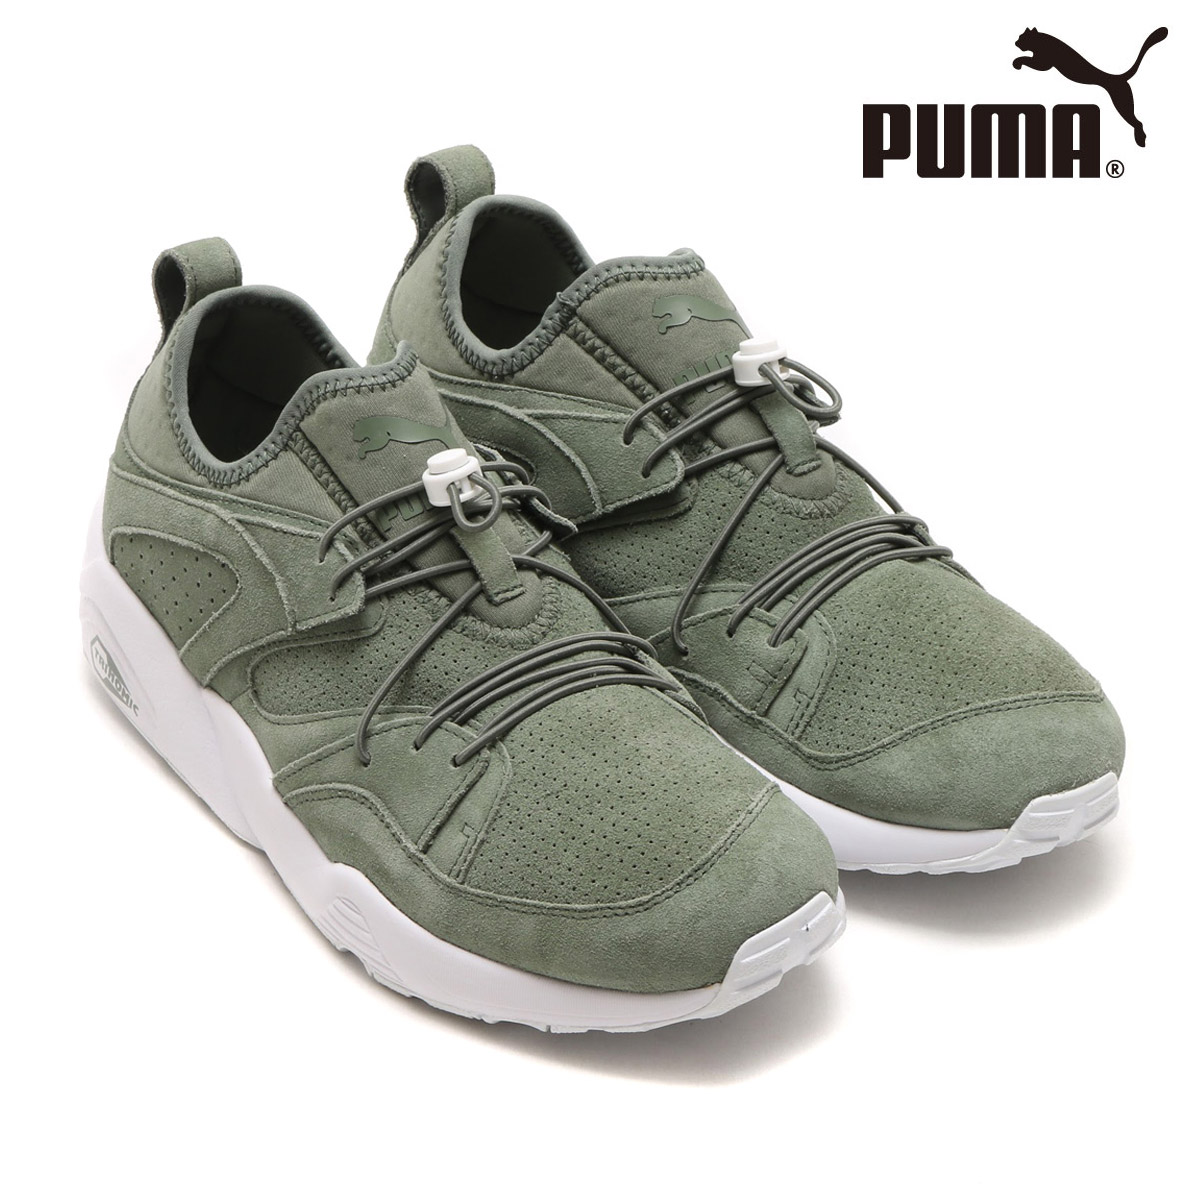 puma wmns blaze of glory soft